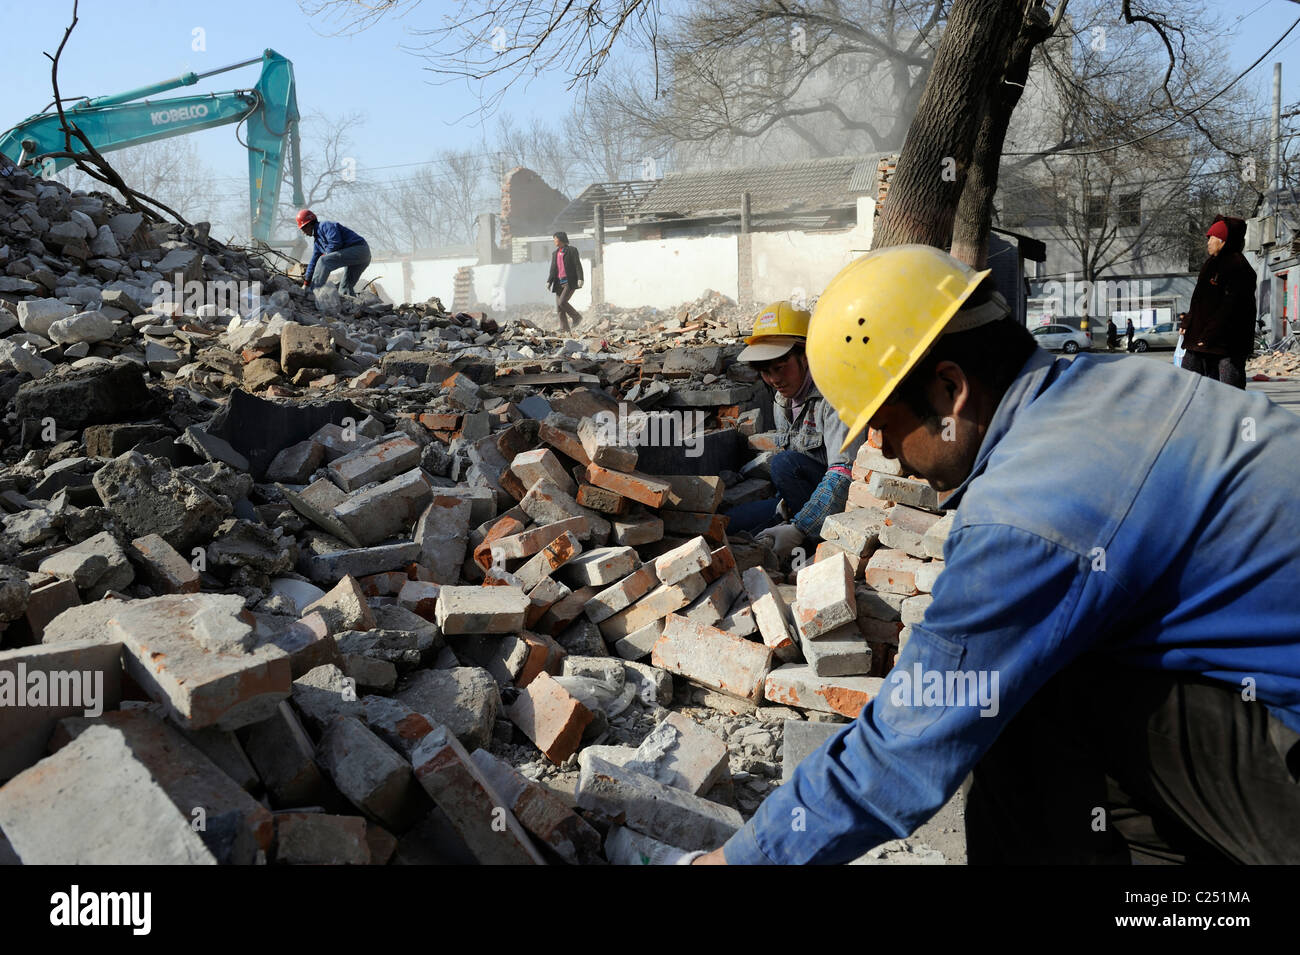 People collecting bricks from ruins of demolished houses in central Beijing, China.20-Mar-2011 - Stock Image